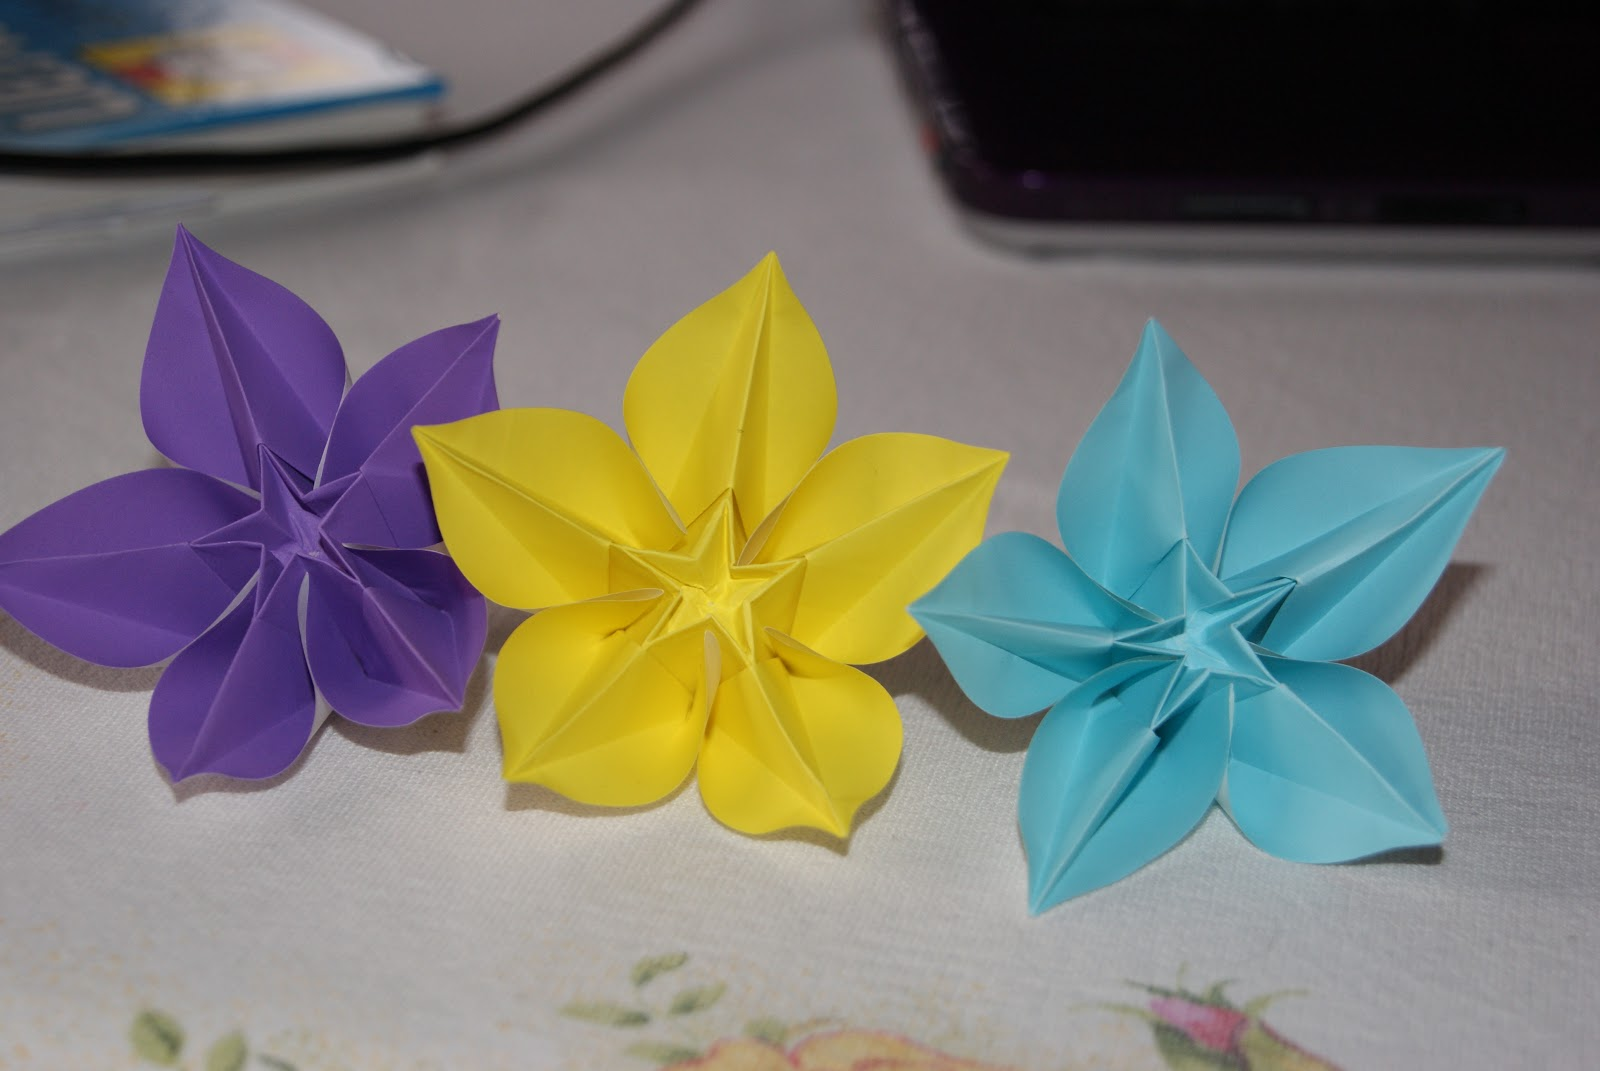 carambola flower origami diagram cat5e wiring being inspired flowers